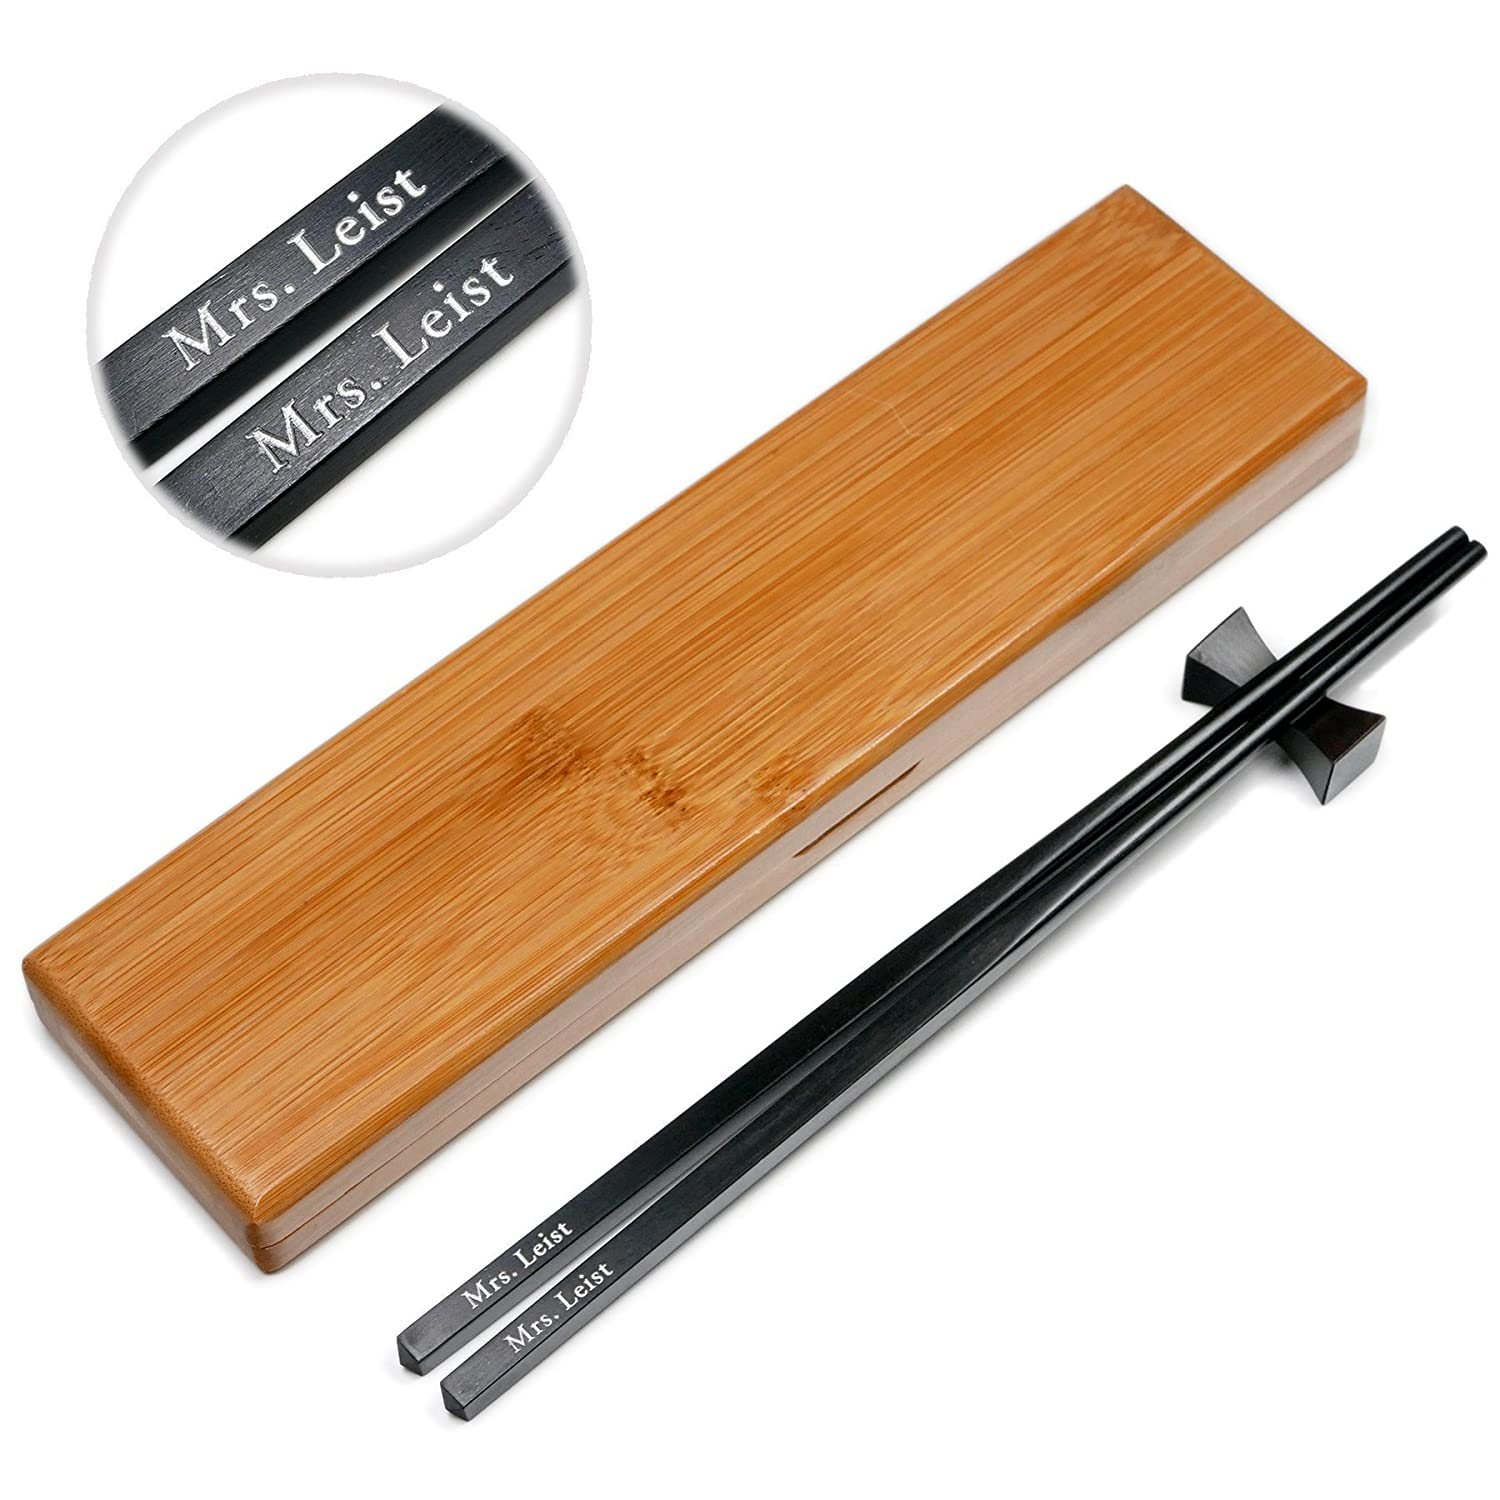 1 Pair Natural Black Ebony Wood Chopsticks Custom Engraved With Personalized Names In Silver Or Gold Color In Classic Square Handle Chinese Or